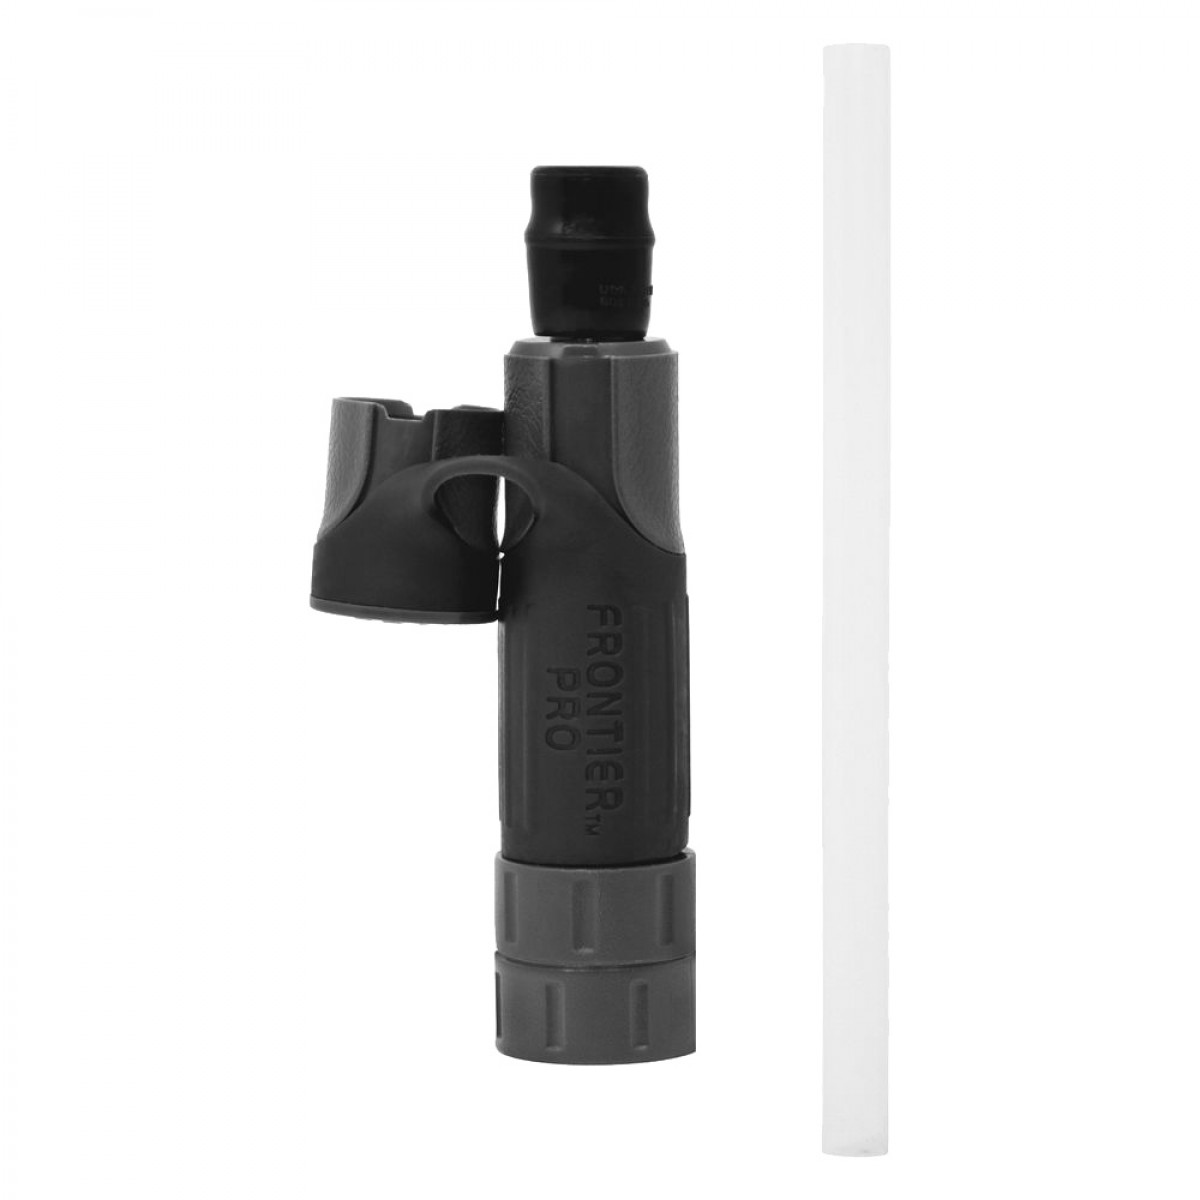 67106 Aquamira Frontier Pro Portable Water Filter